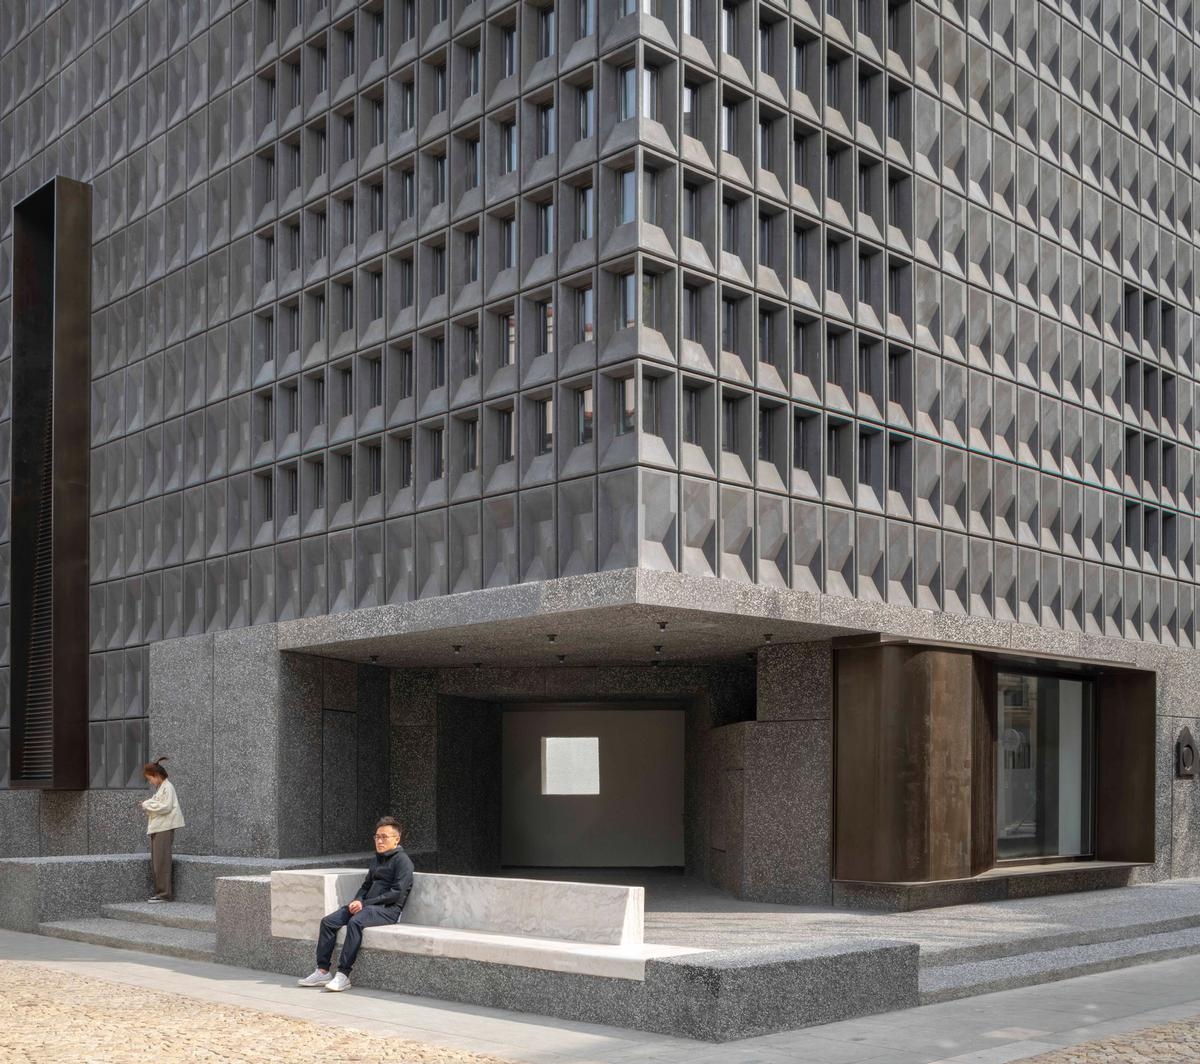 The neo-Brutalist structure is composed of 'various textured concretes'. / Pedro Pegenaute